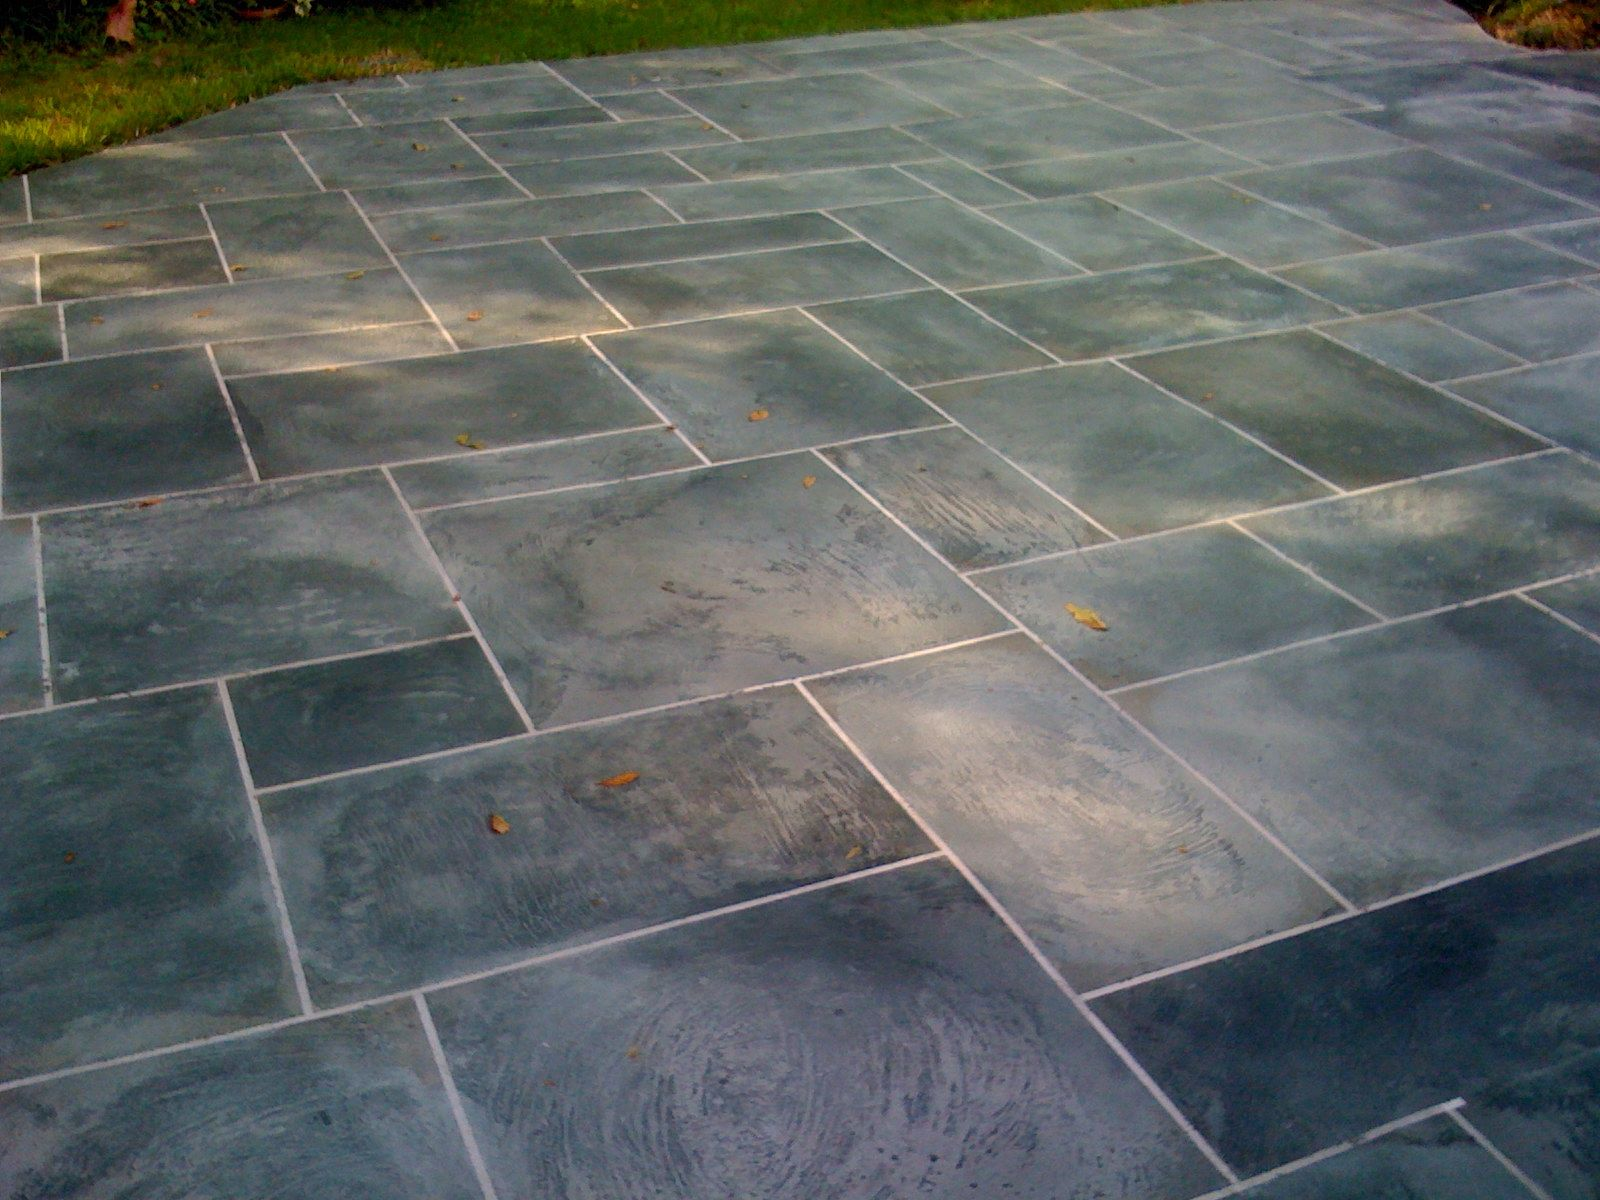 Decorative Concrete Overlay Concrete Magic Designs, LLC 225 317 2774  Www.concretemagicdesigns